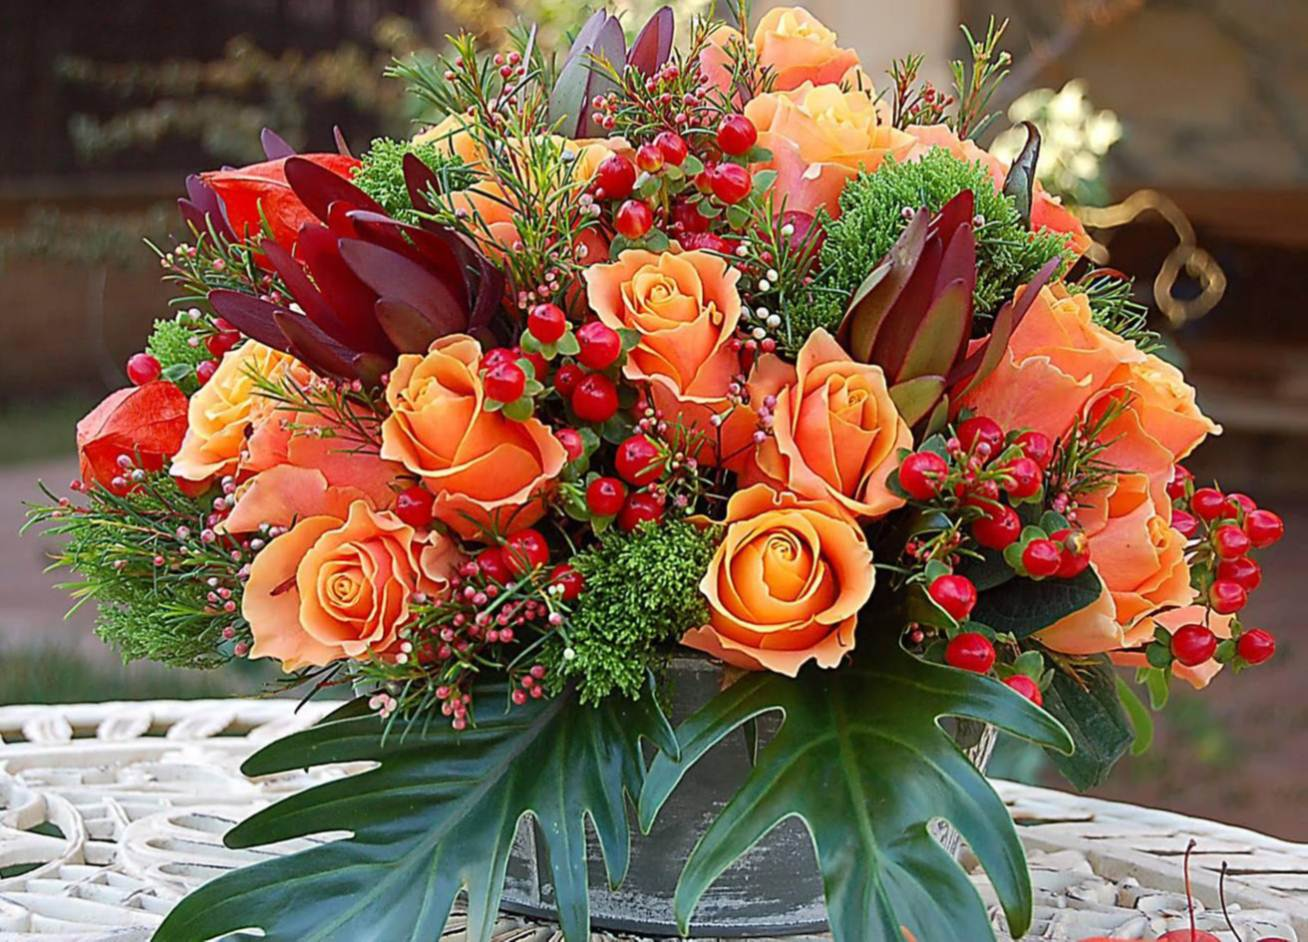 Beautiful fall flower arrangements image collections flower delight your partner by sending her allanna a creative floral delight your partner by sending her izmirmasajfo